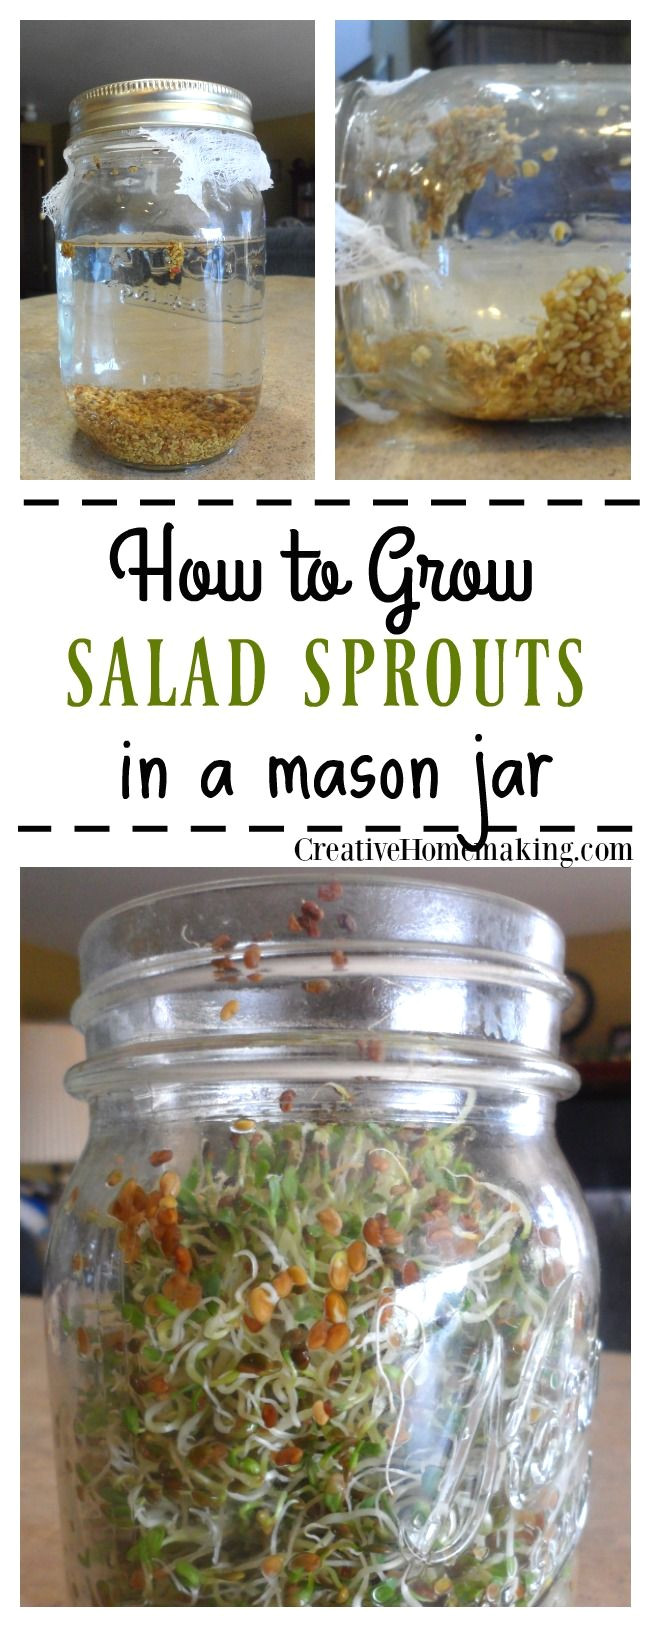 easy instructions for growing your own salad sprouts from seed in a mason jar on the